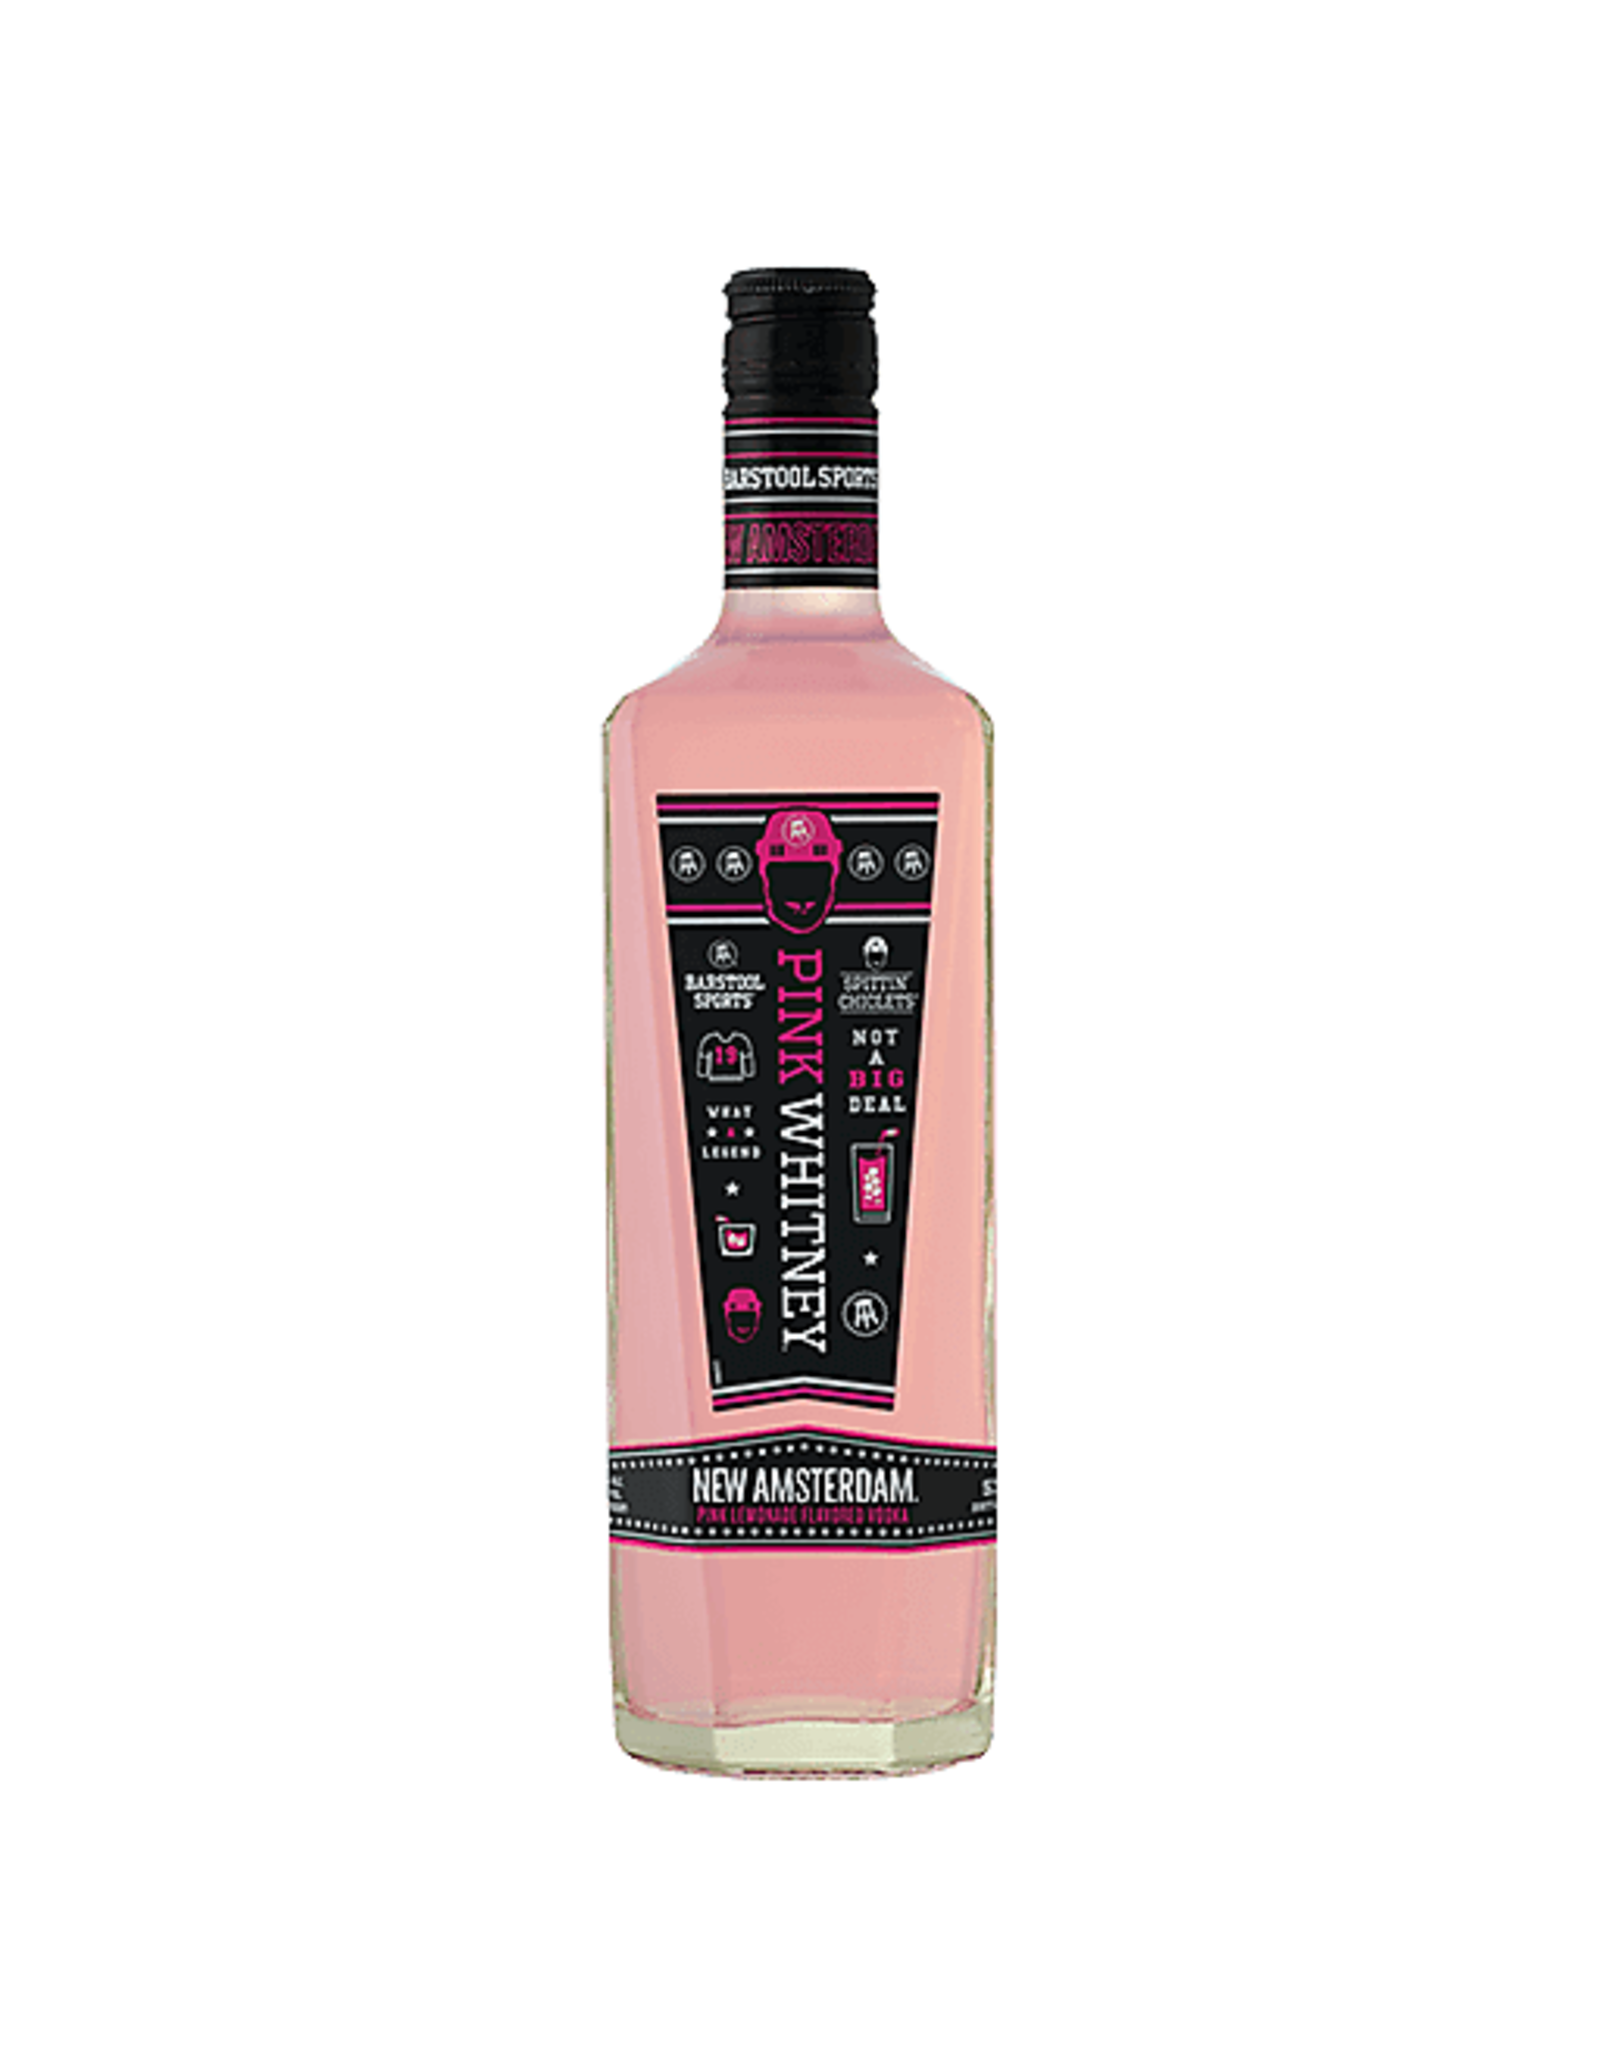 NEW AMSTERDAM PINK WHITNEY